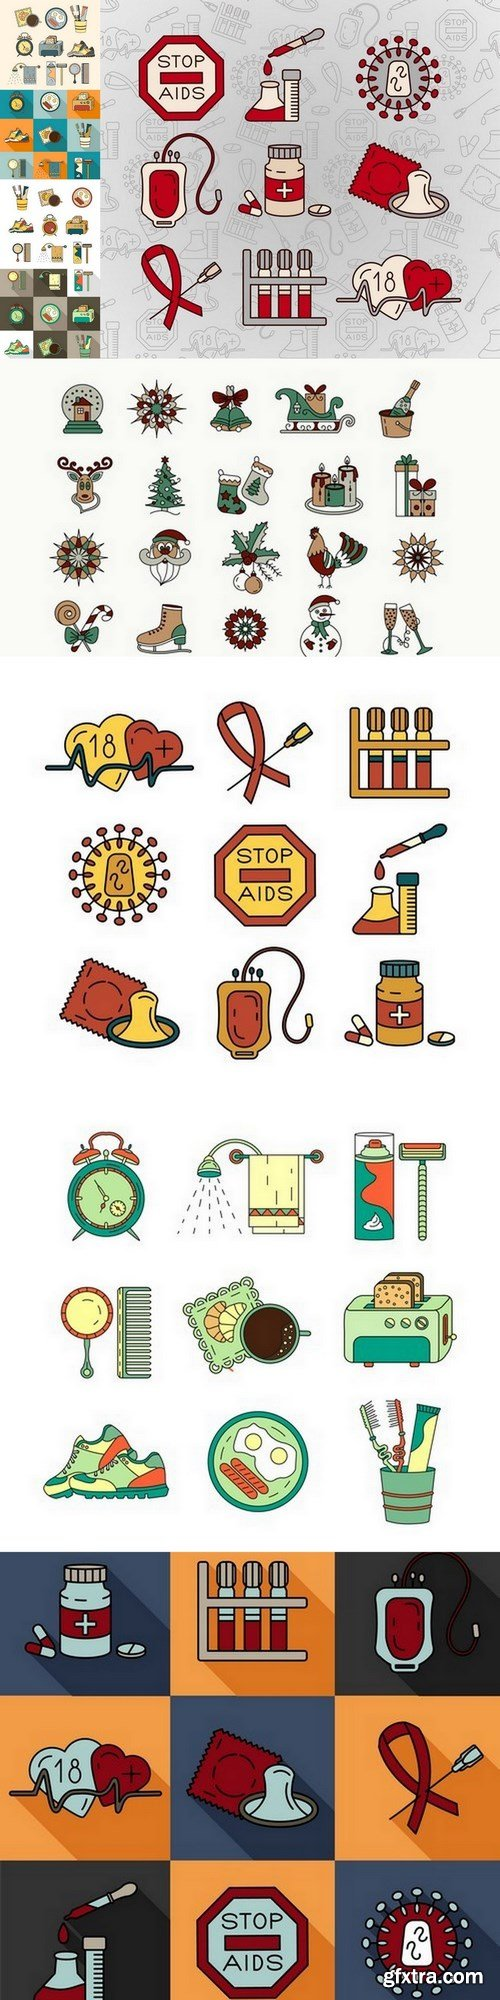 household objects - 9 EPS Vector Stock